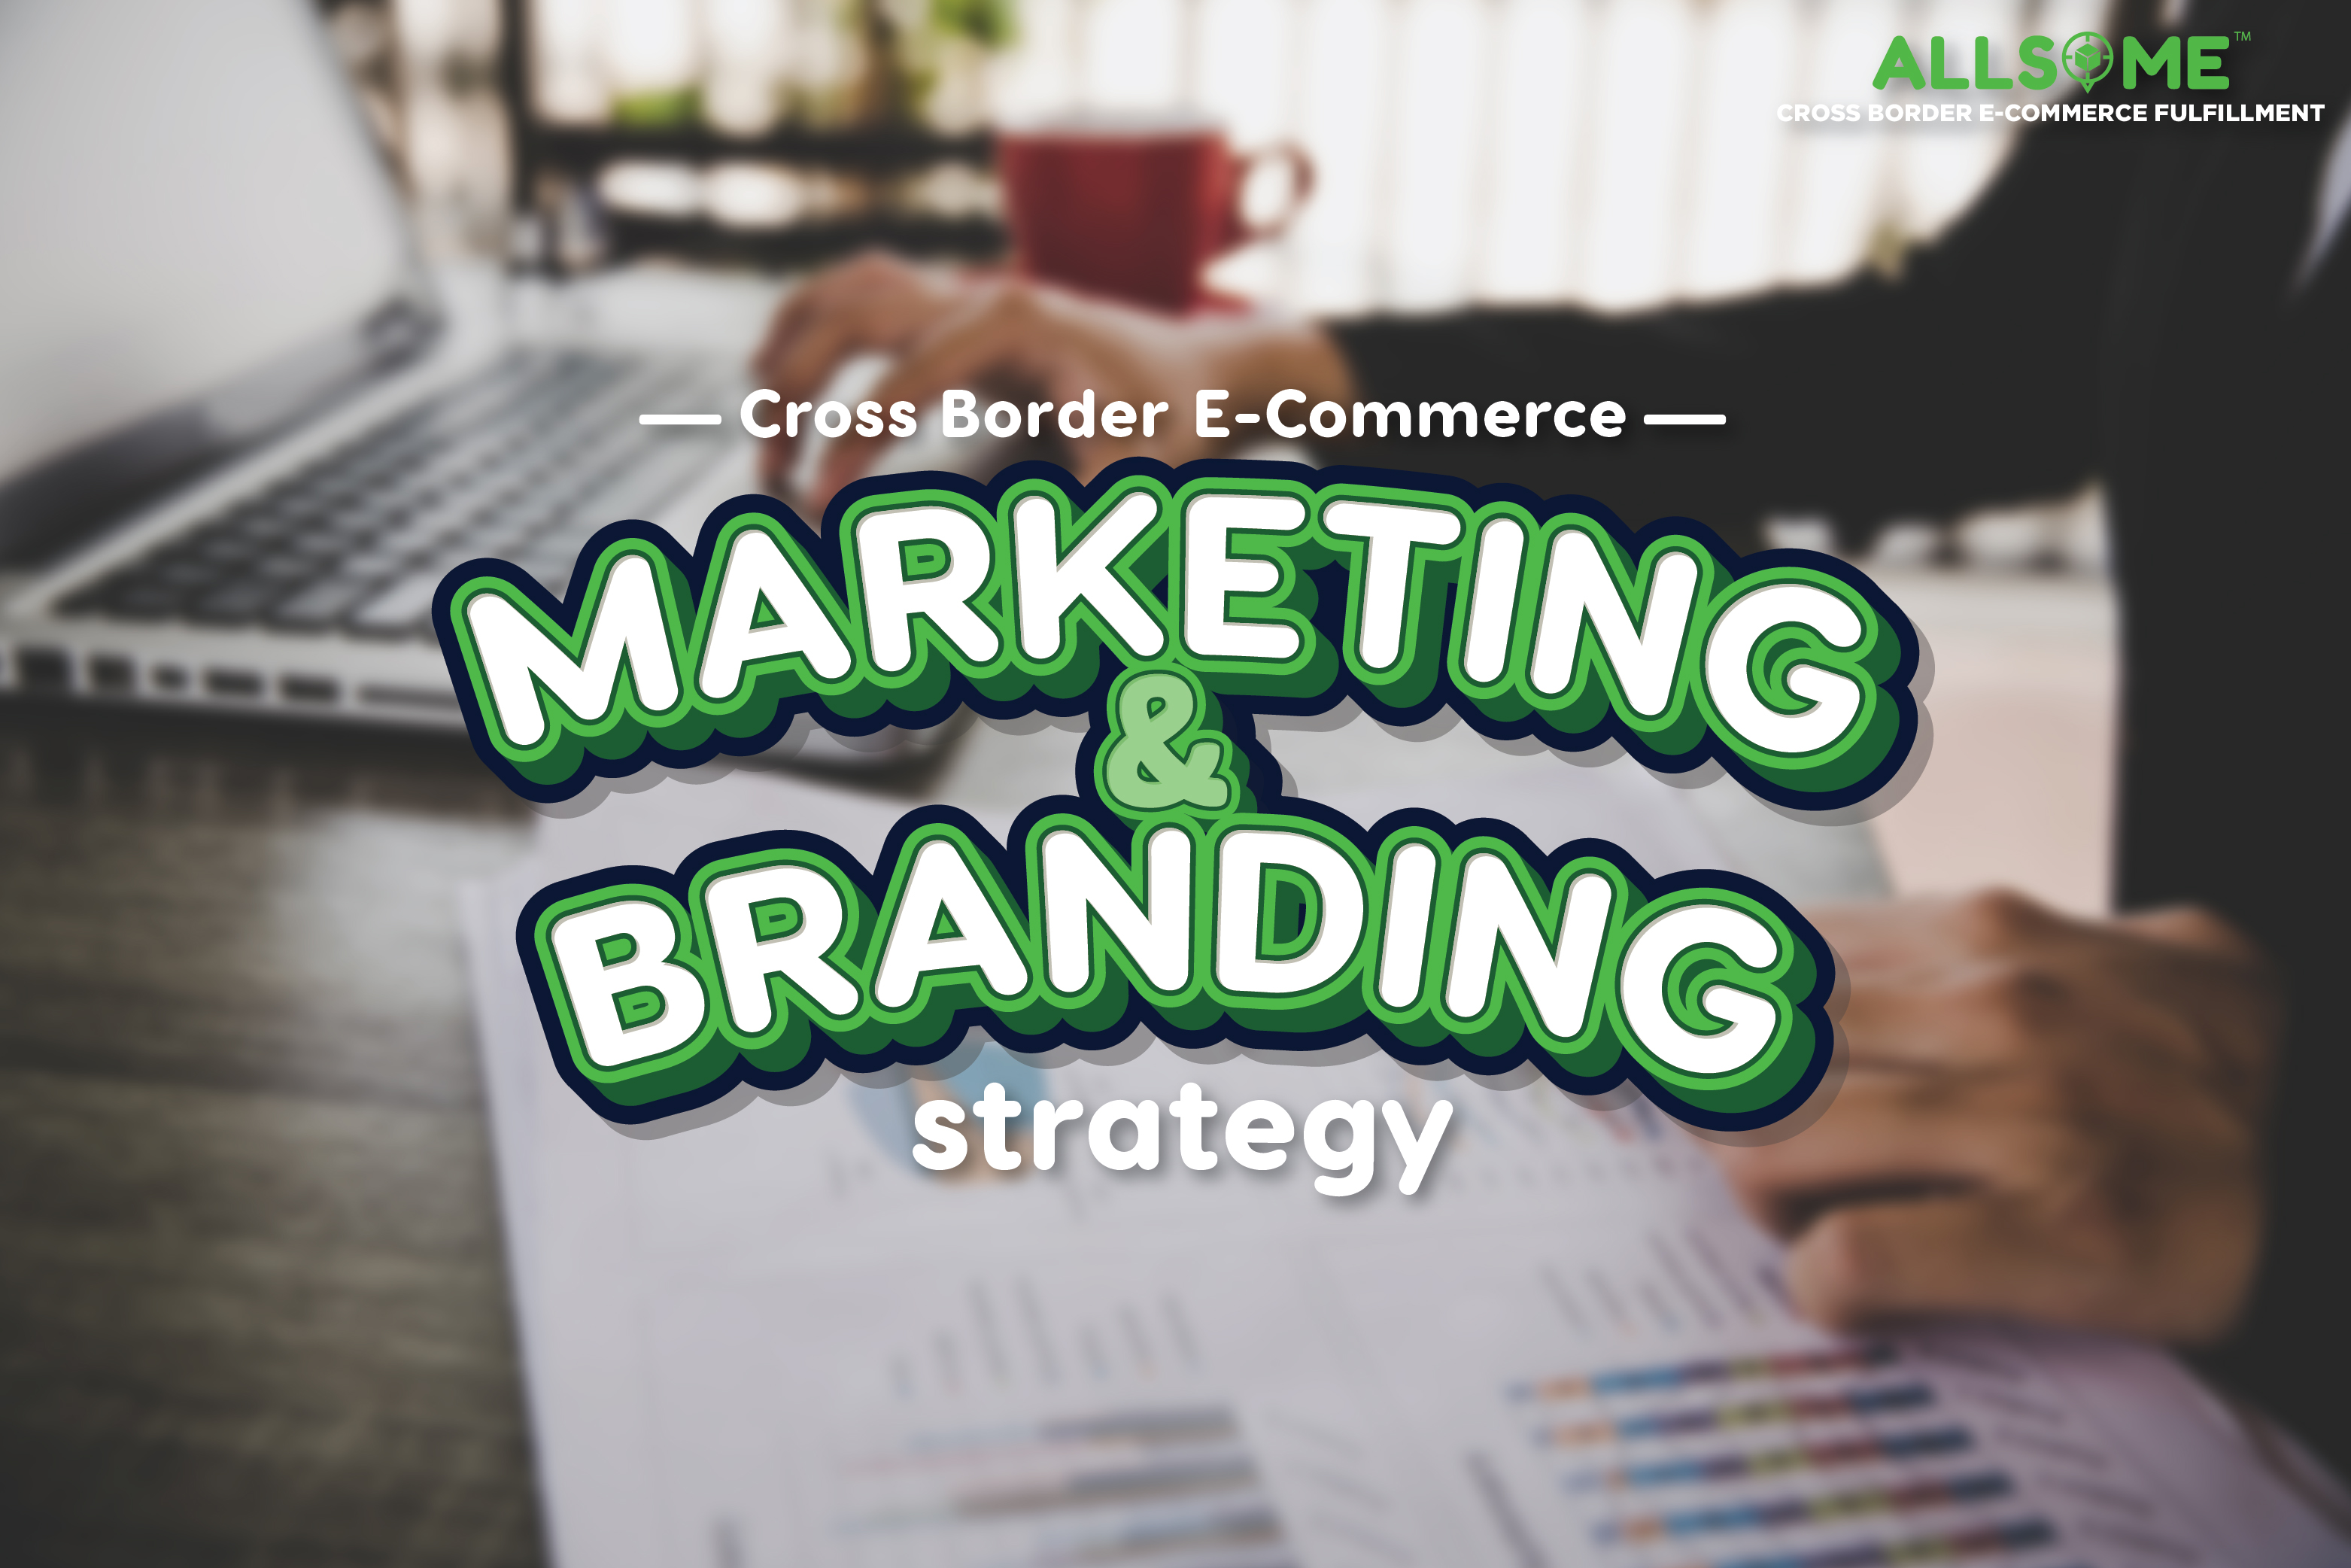 AllSome Marketing & Branding Strategy